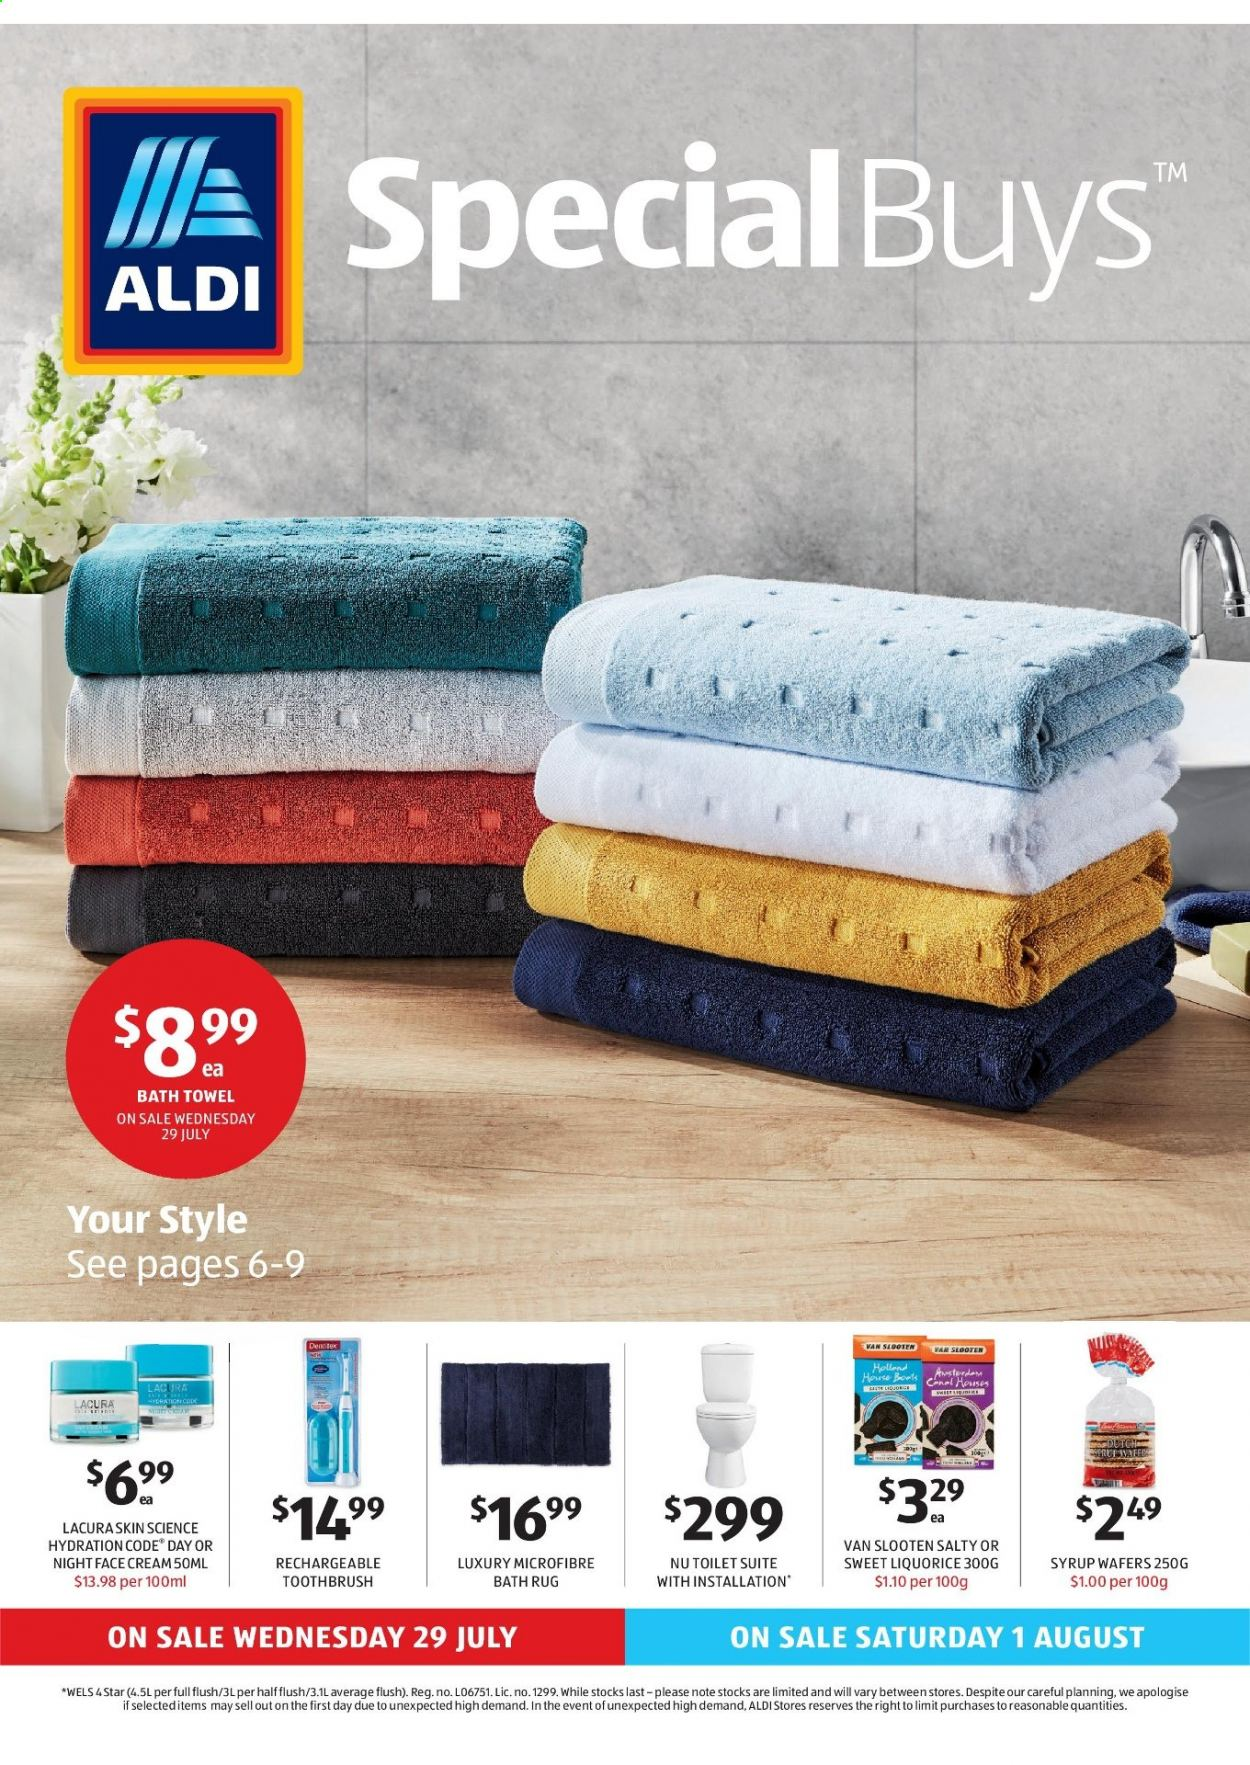 ALDI Catalogue - 29.7.2020 - 4.8.2020 - Sales products - bath, bath towel, rug, toilet, toothbrush, towel, wafers, face cream, syrup. Page 1.